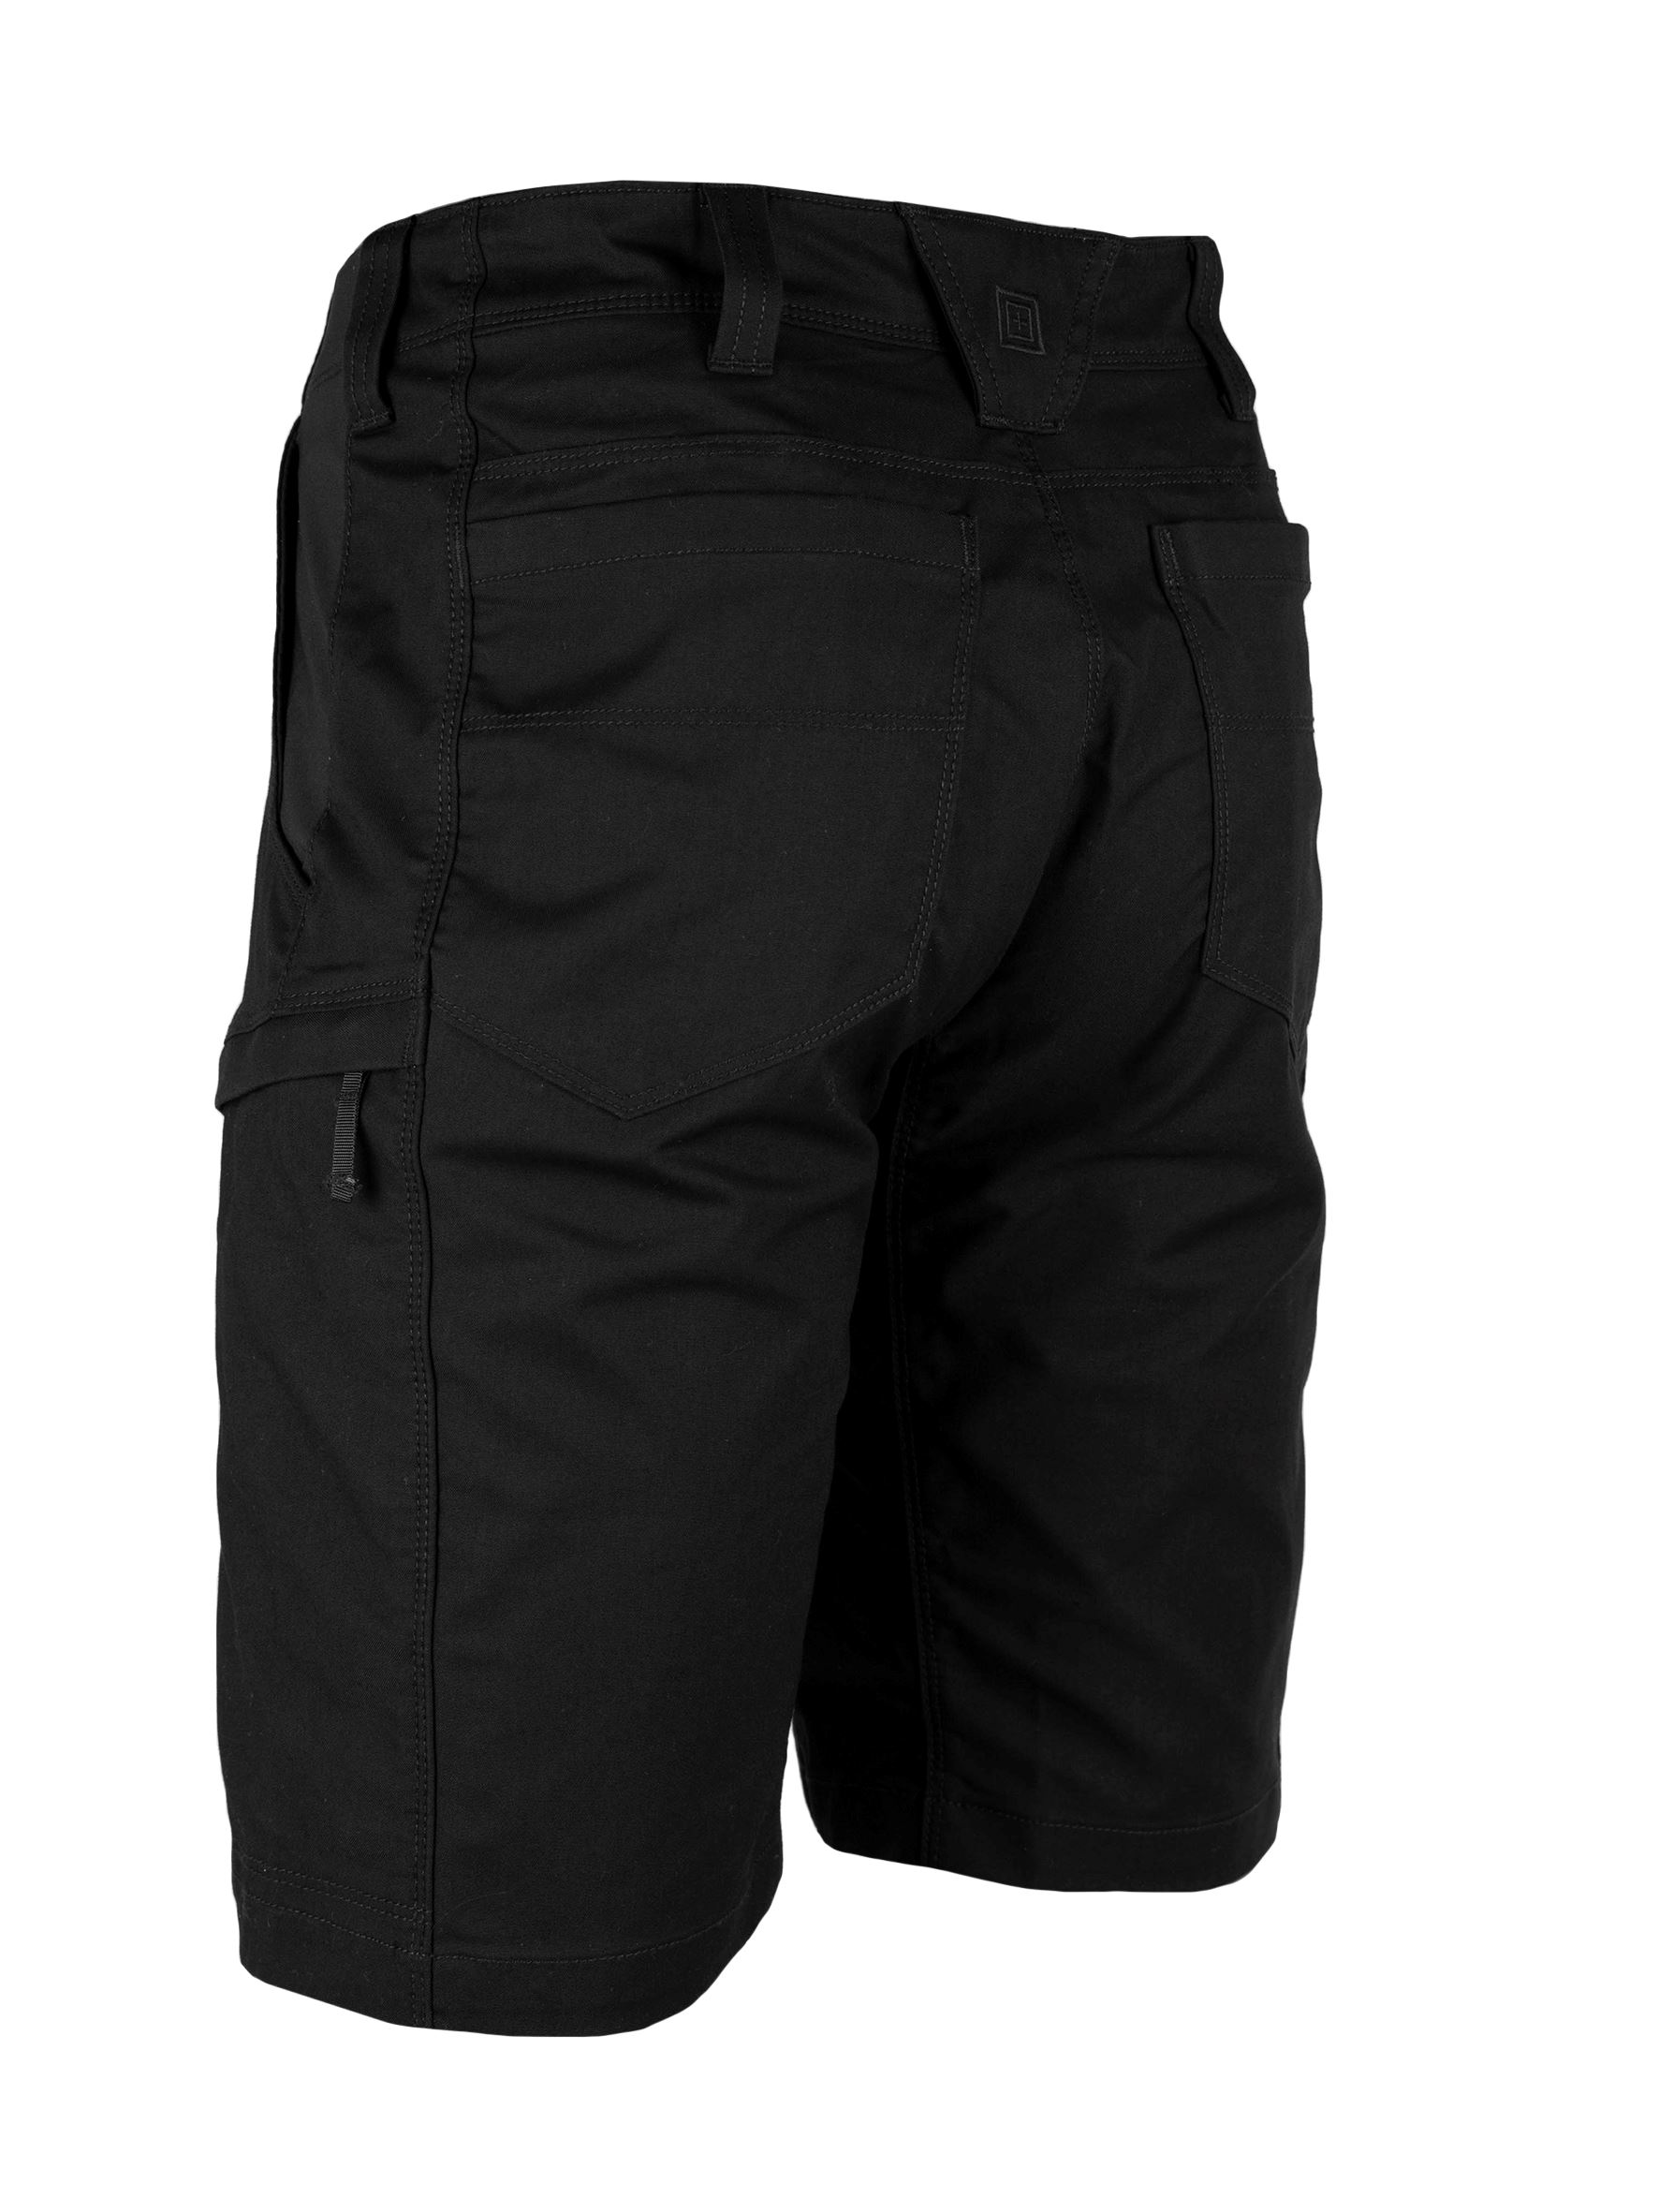 5.11 shorts i Flex-tac stræk canvas